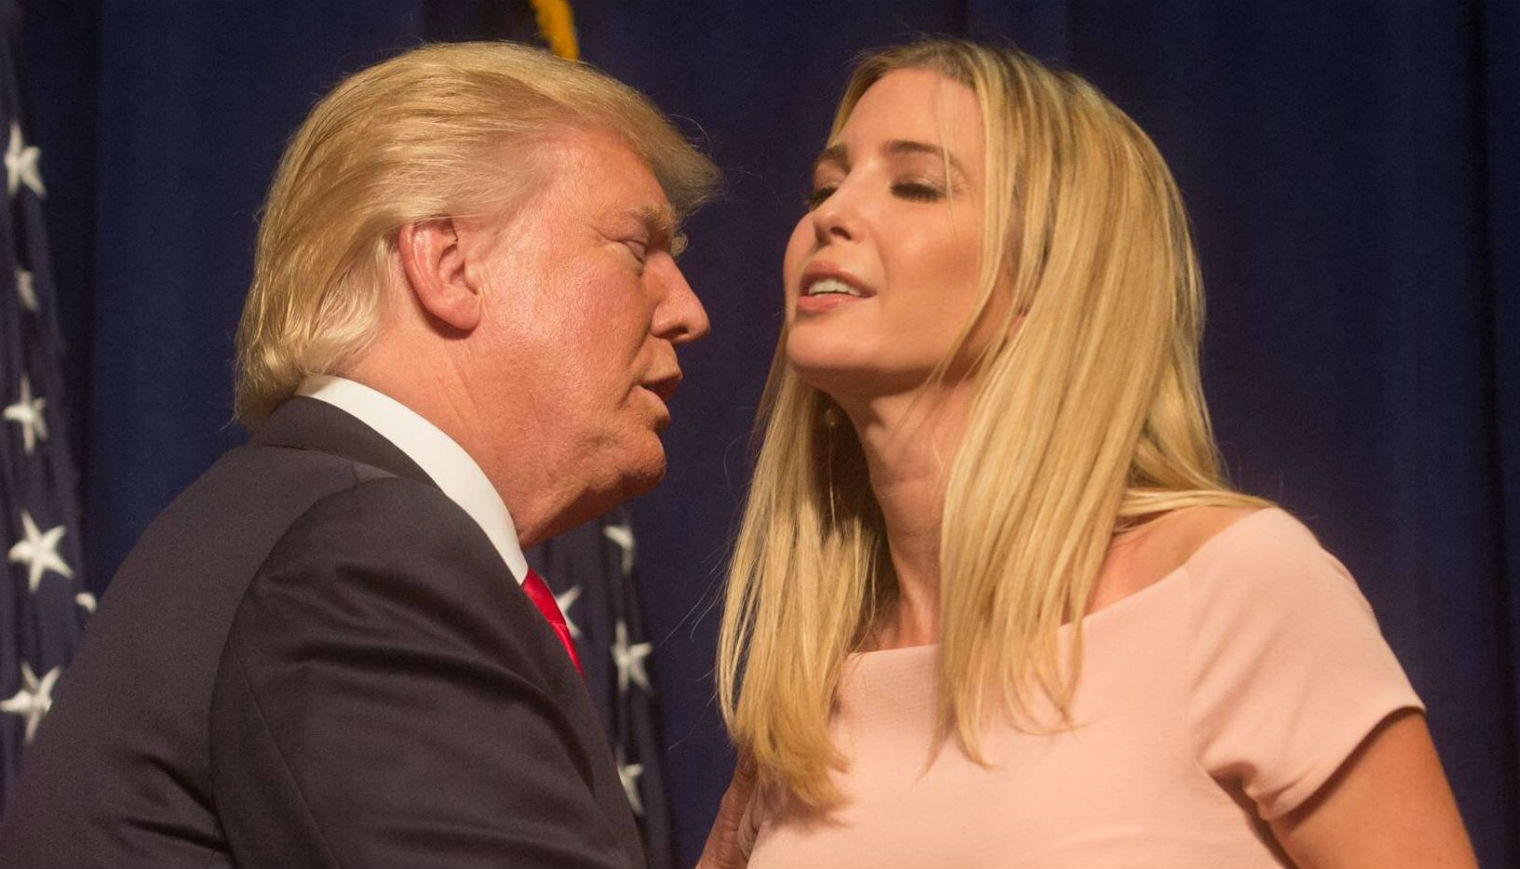 dick touches breast ivanka trump kimmel